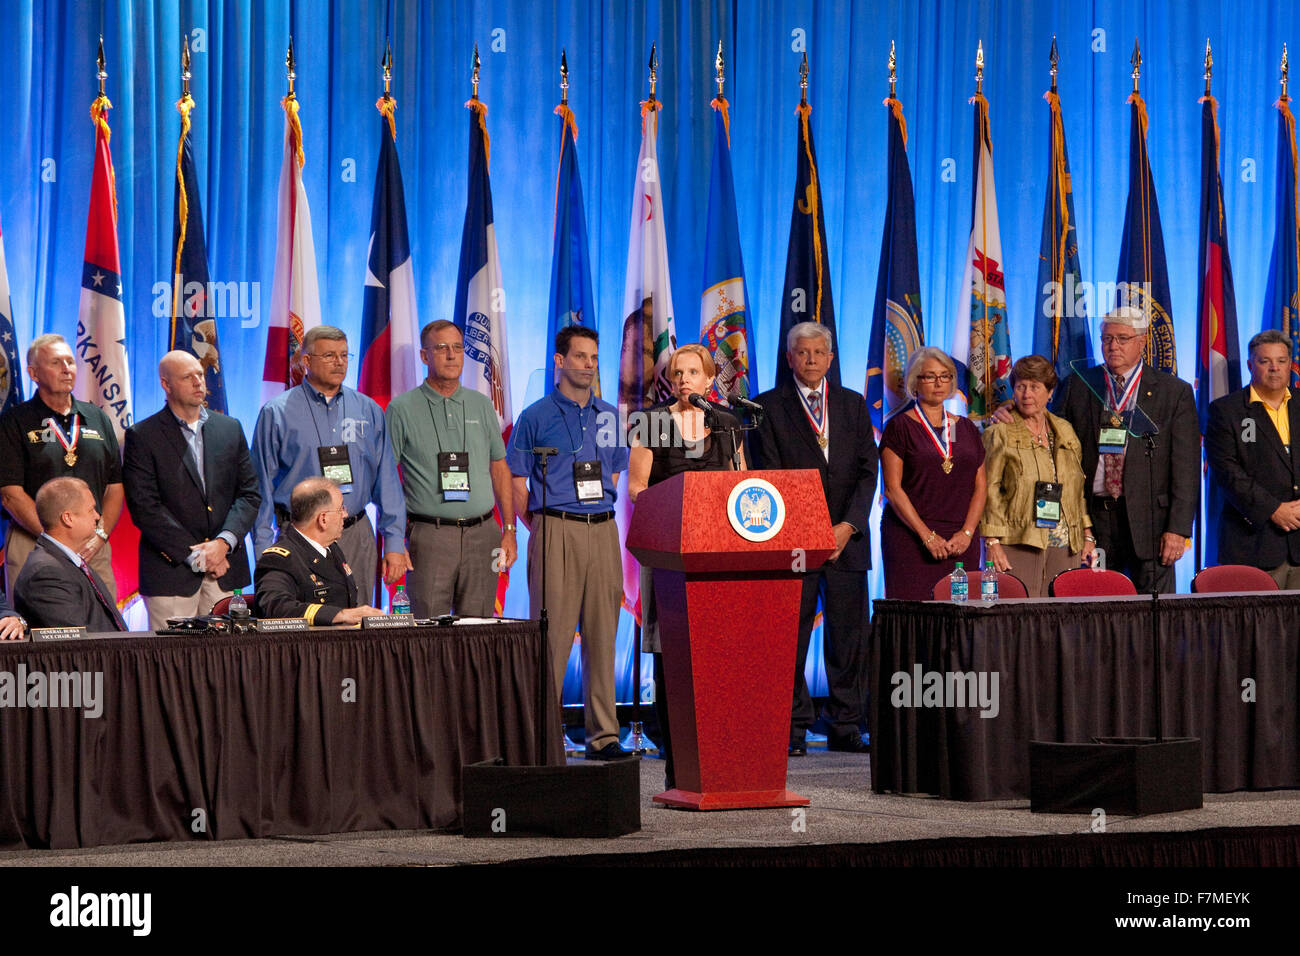 Annual meeting of the National Guard Association in Reno, Nevada, 9/11/12 - Stock Image